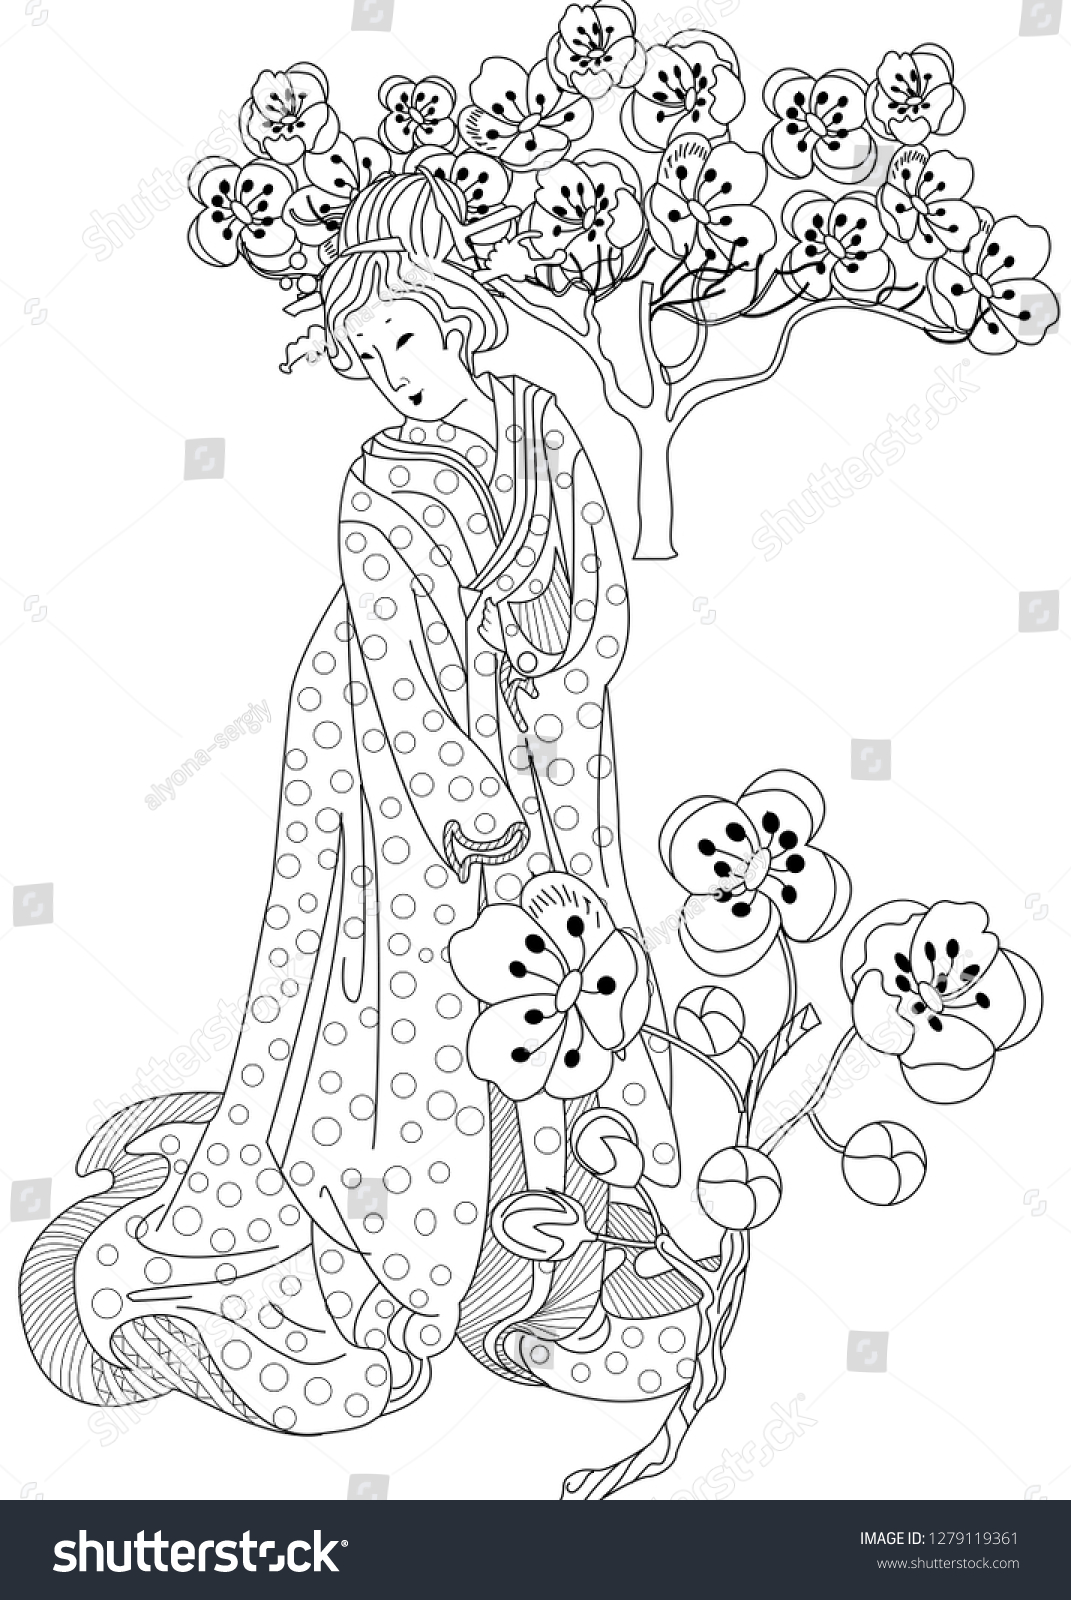 - Coloring Pages Coloring Book Children Adults Stock Vector (Royalty